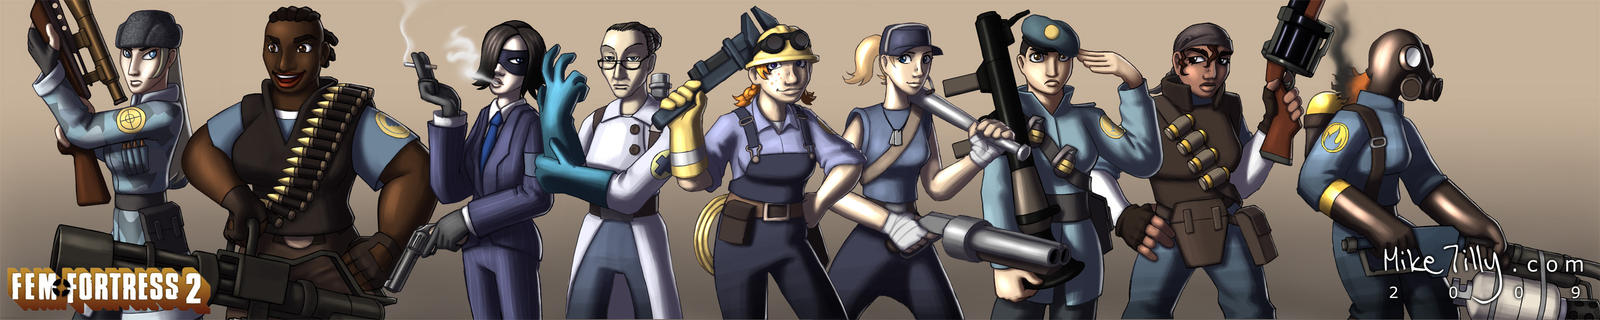 Fem Fortress 2 by HertzaHaeon